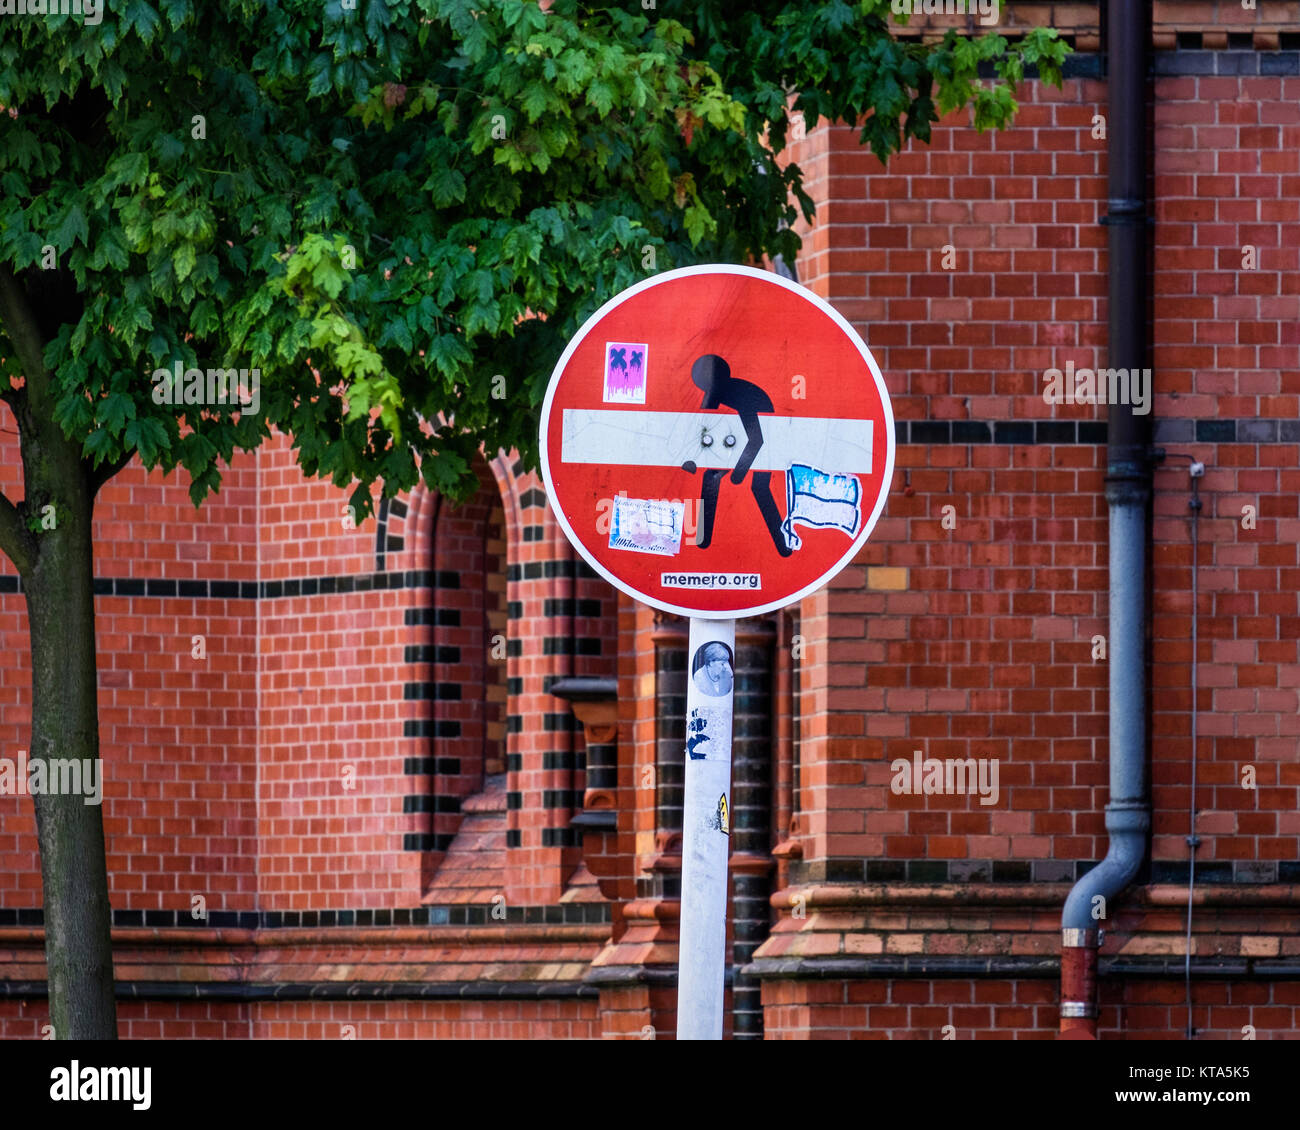 Berlin. Defaced traffic control sign, no entry sign,altered to show man carrying plank,amusing street art - Stock Image